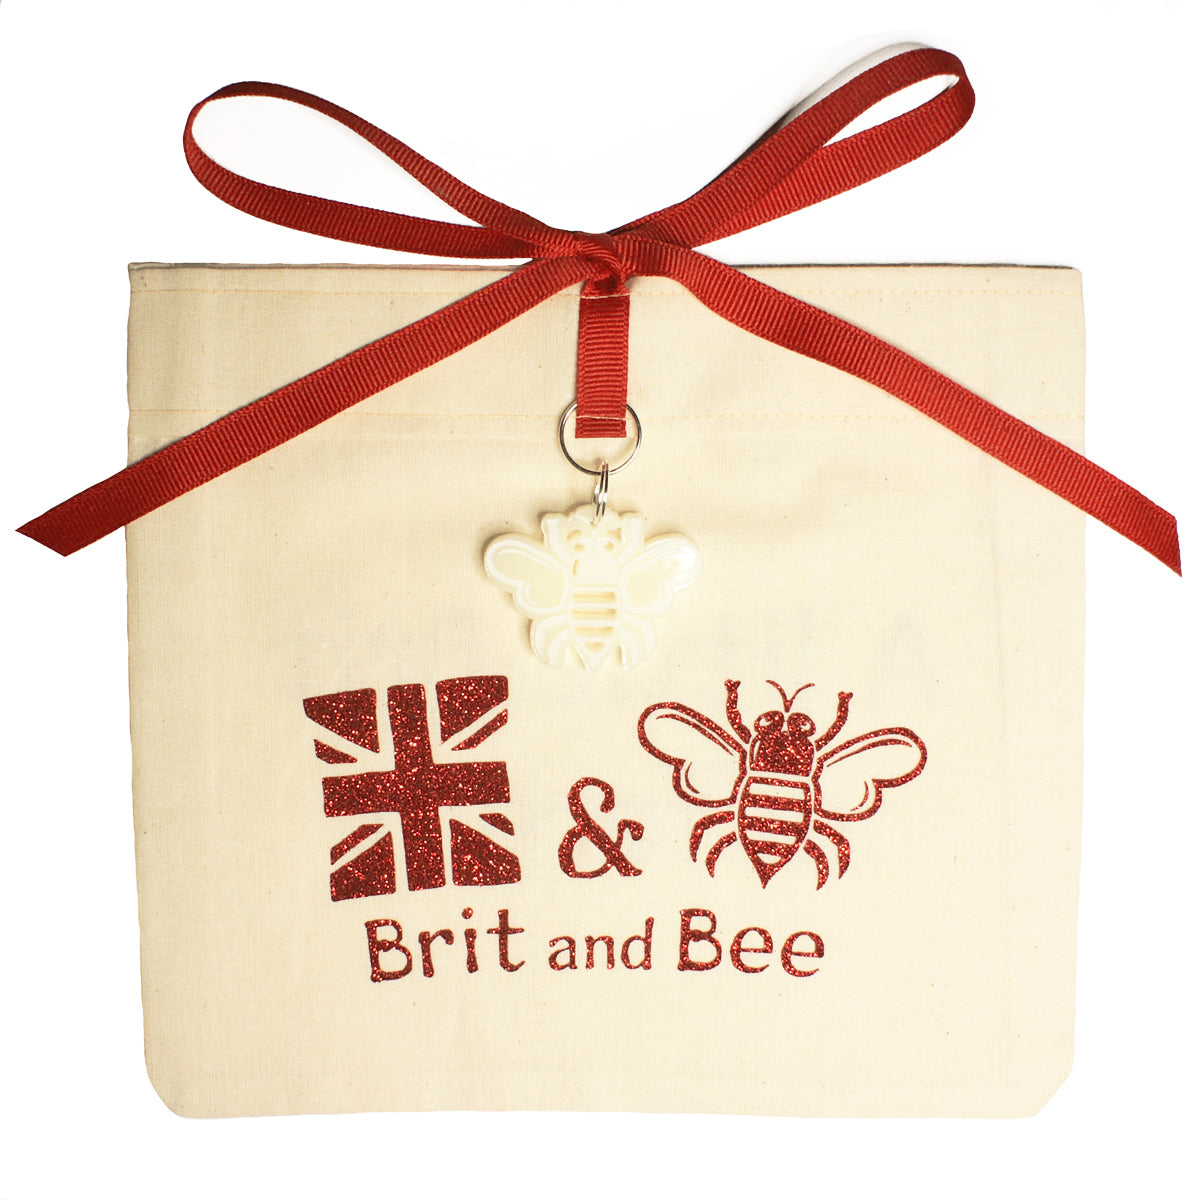 Arkansas State Decal | Brit and Bee